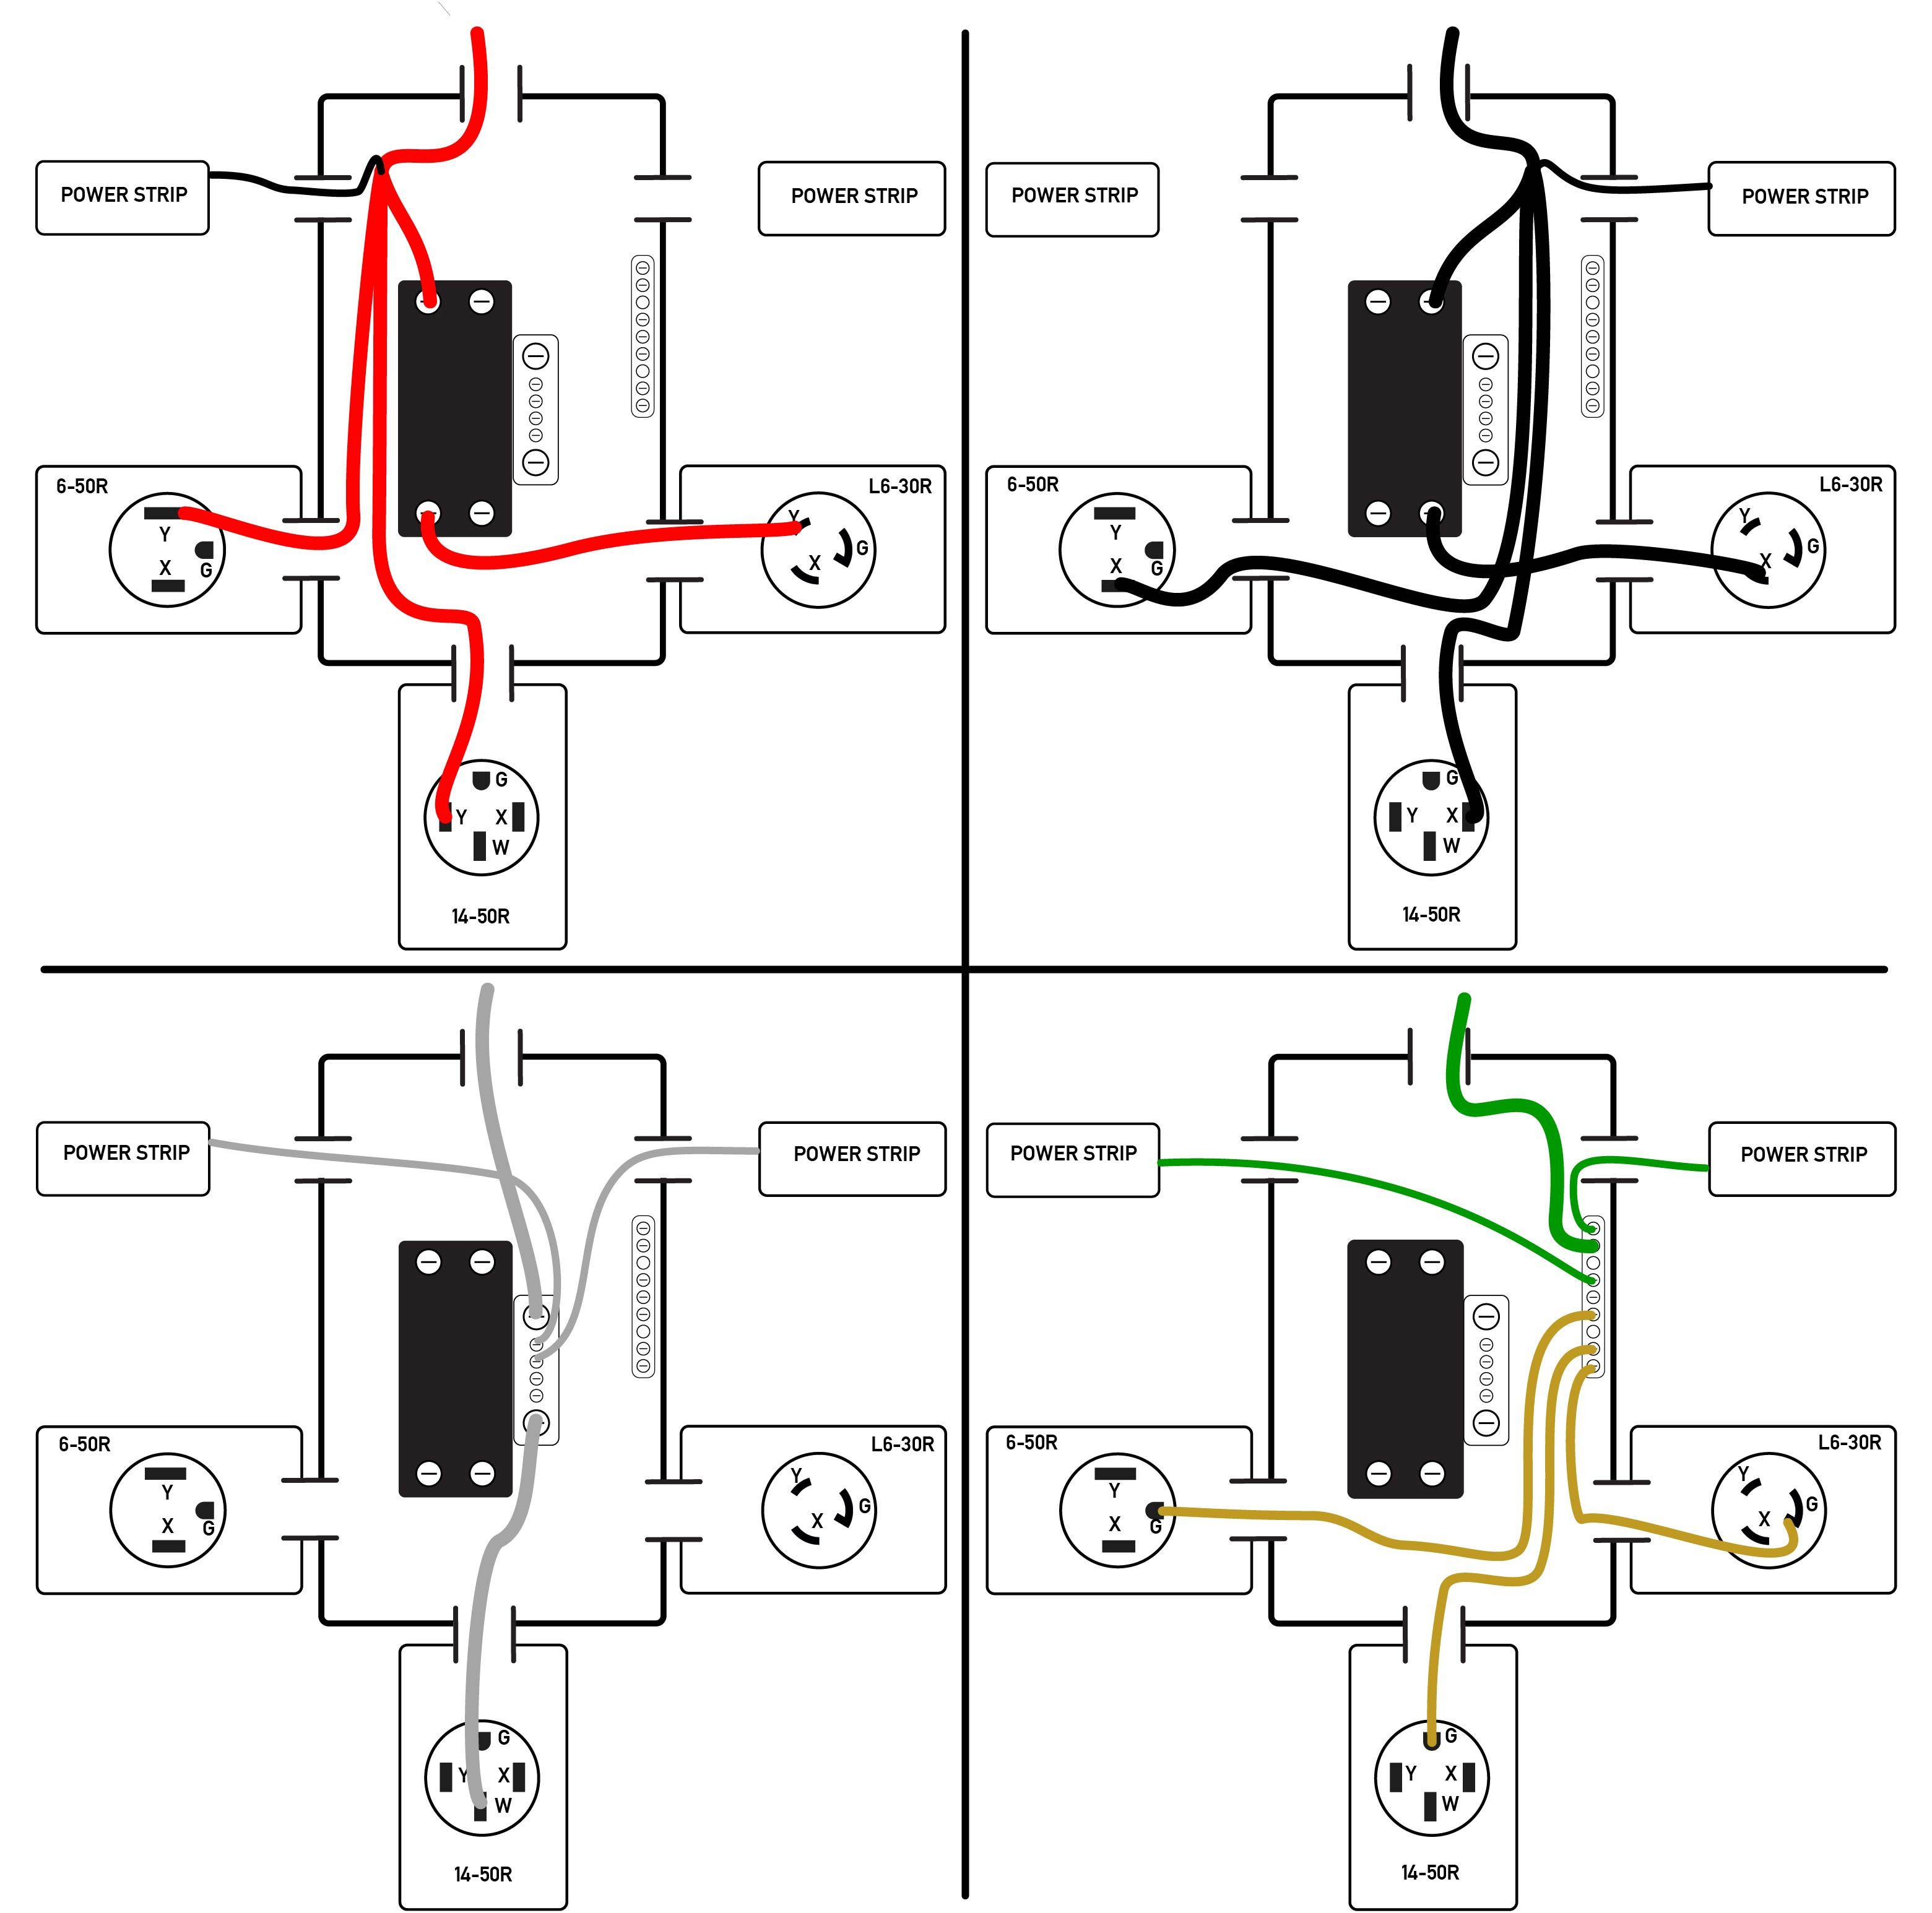 Figure 22?resize=620%2C614 build a 240v power adapter for your mig welder make power strip wiring diagram at readyjetset.co